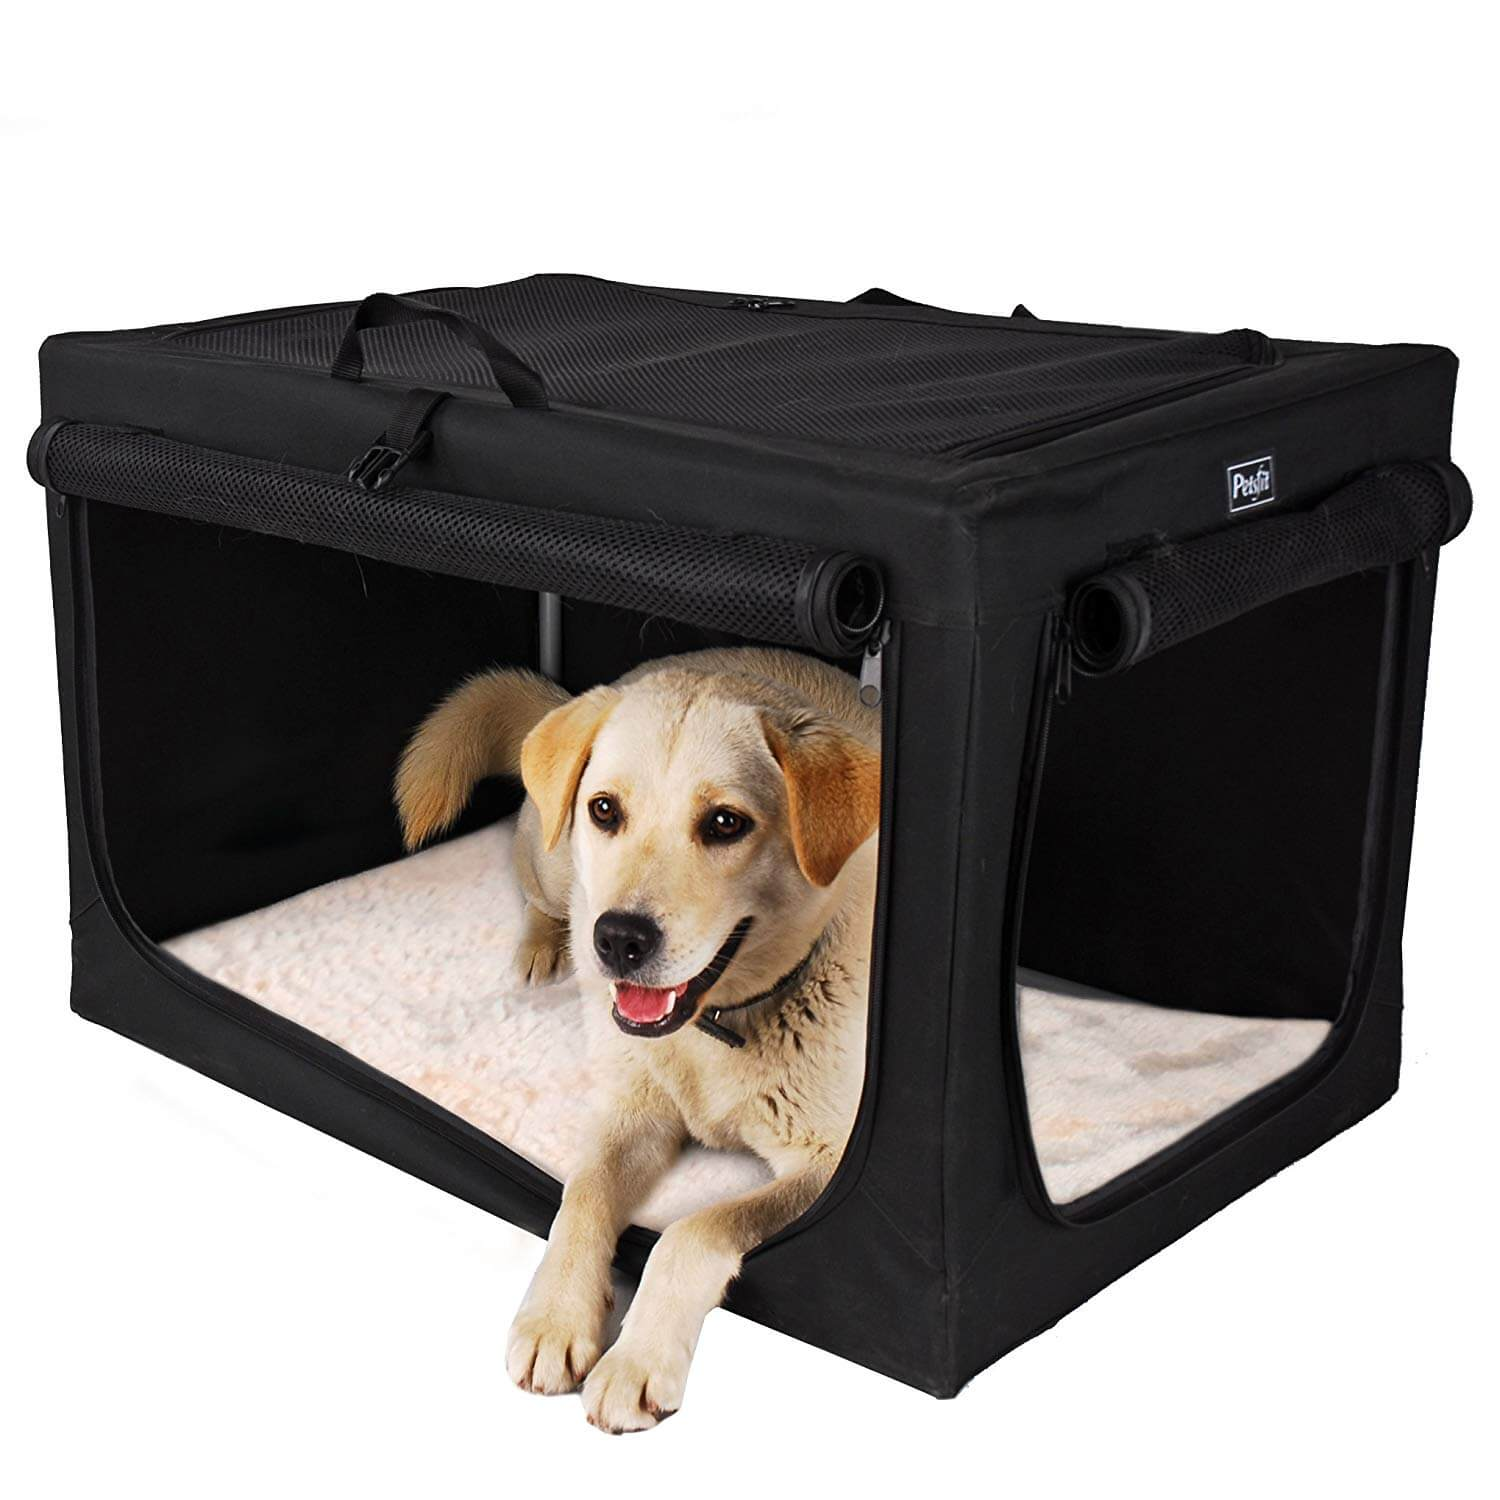 The Best Soft Dog Crates In 2019